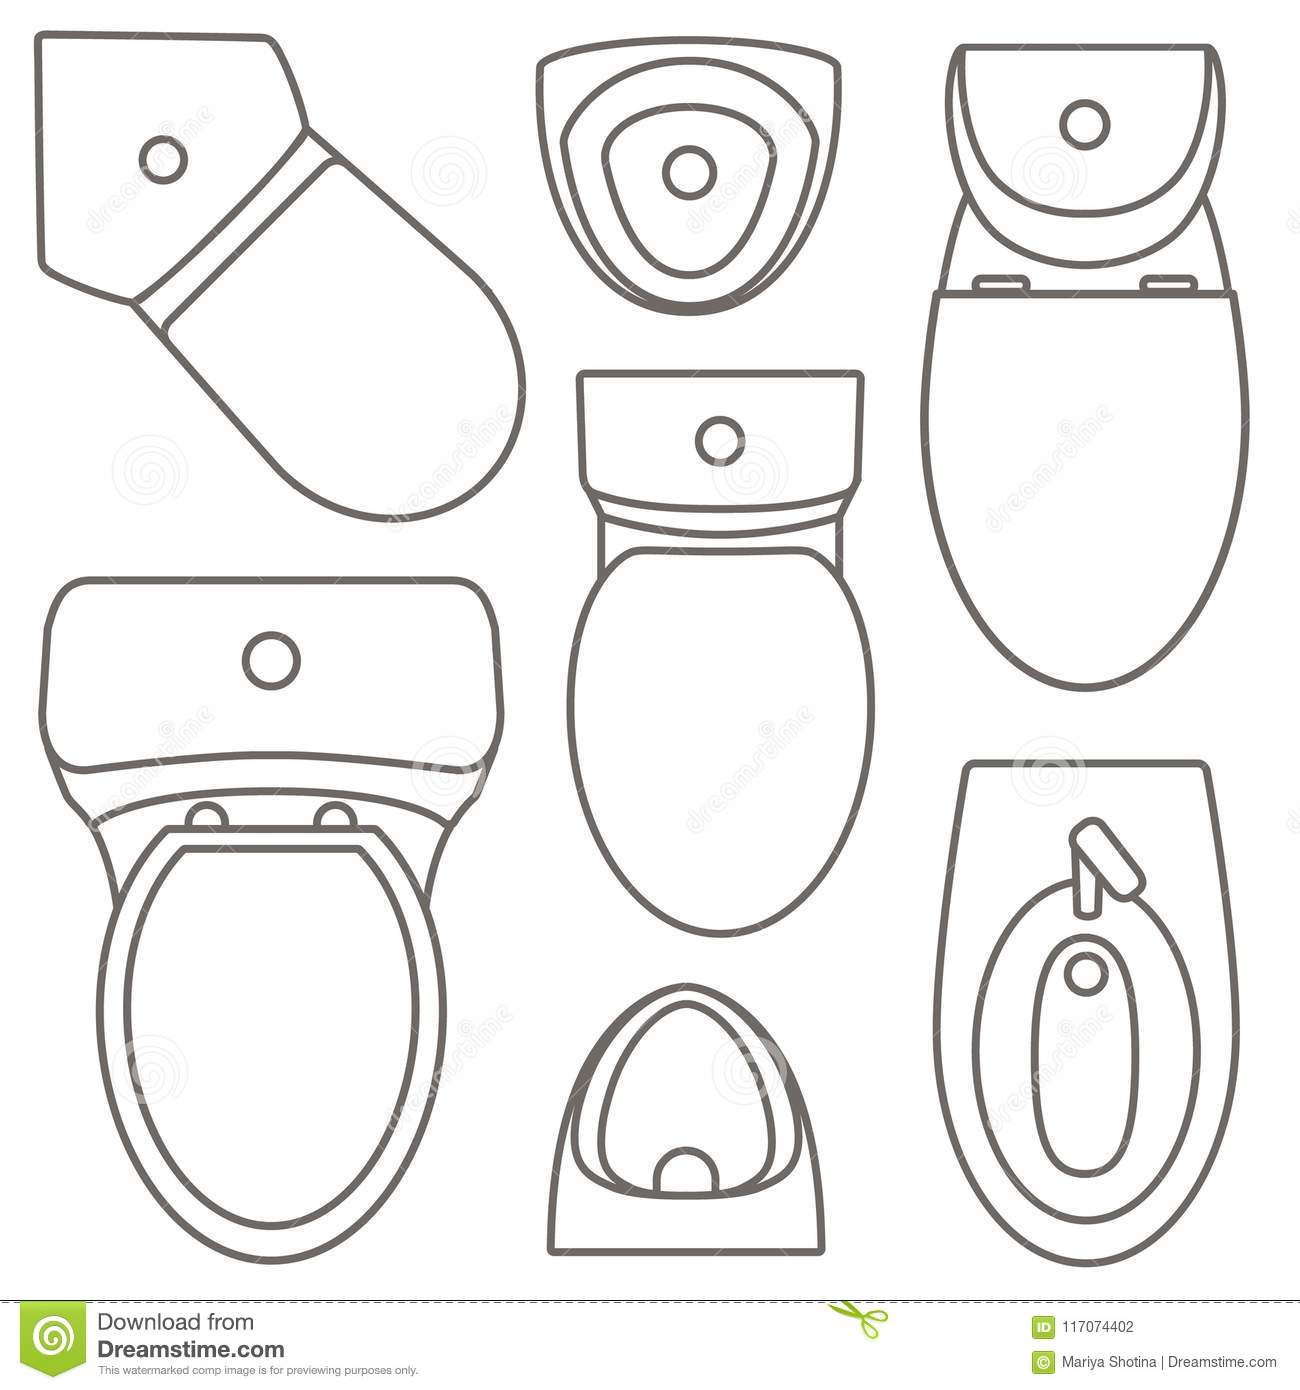 Top View Of Black Toilet Bowl Isolated On White Royalty